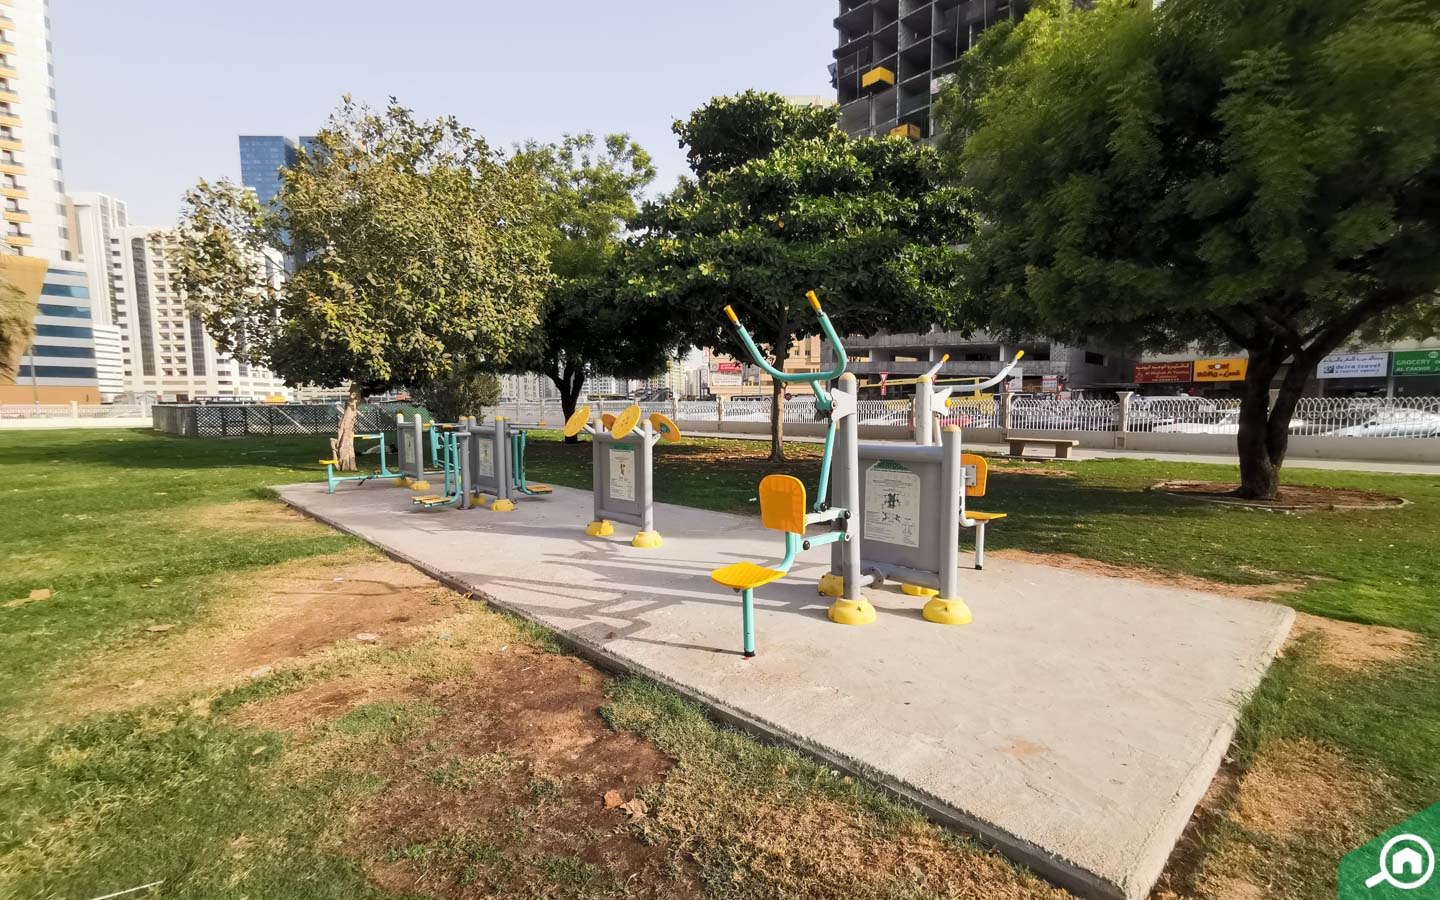 Outdoor gym stations at the Al Nahda Sharjah Park